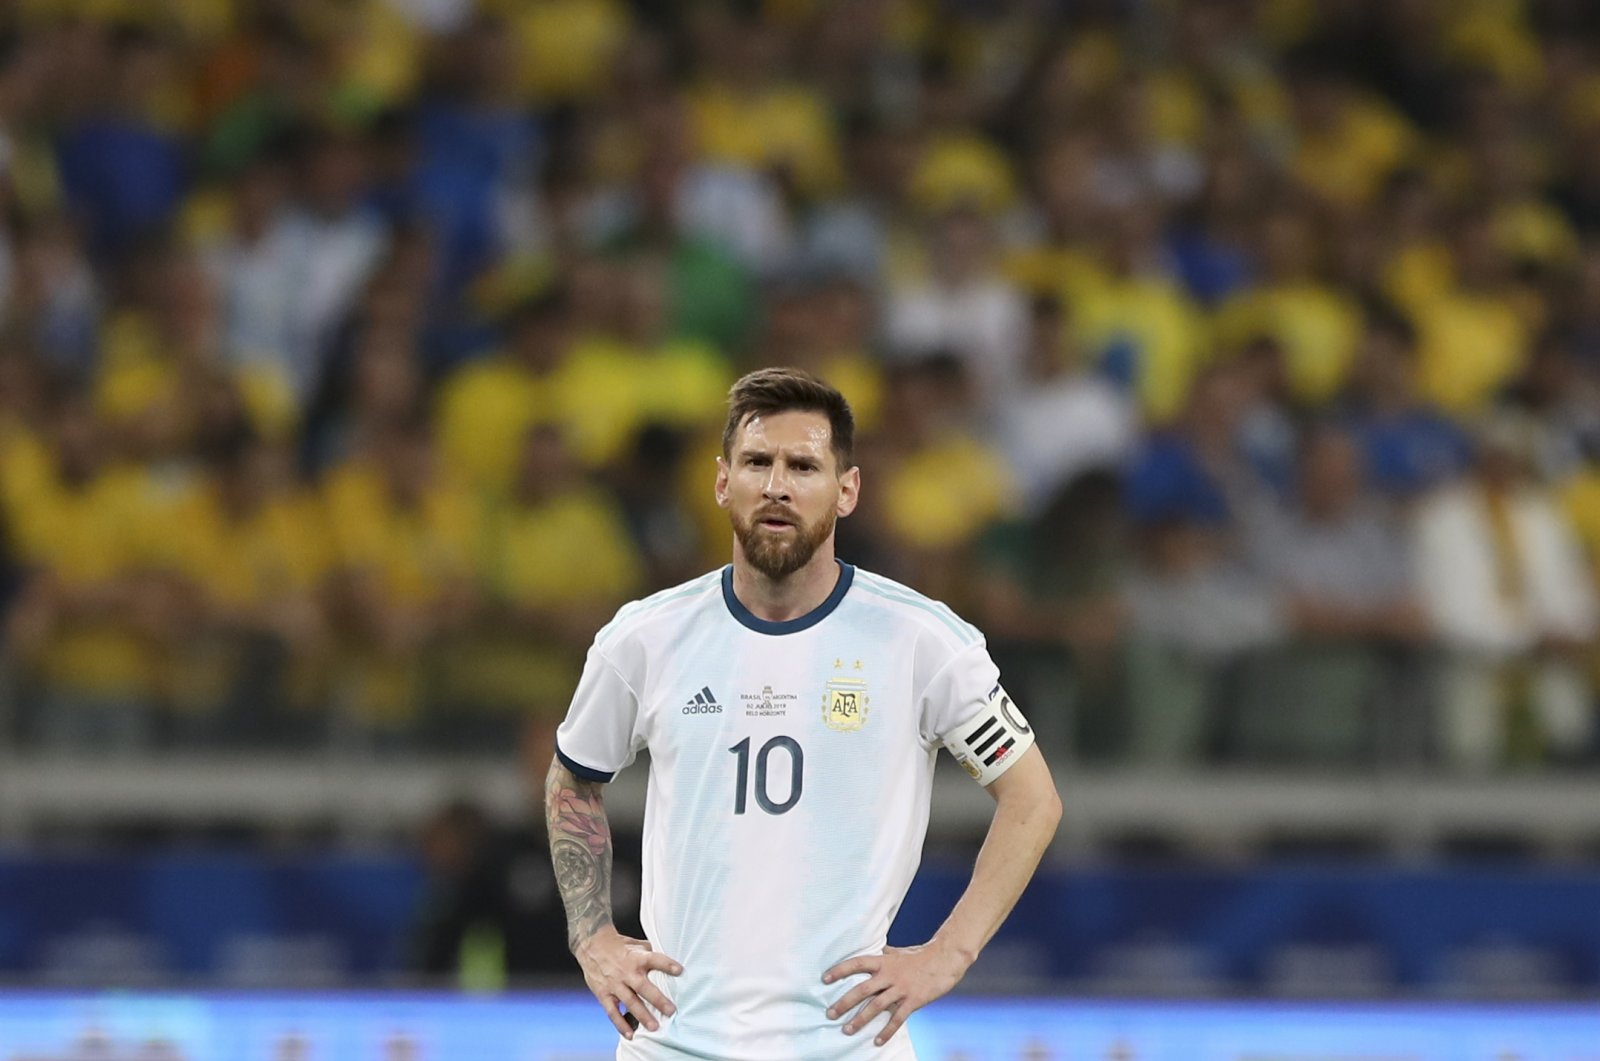 Argentina's Lionel Messi reacts during a Copa America match, in Belo Horizonte, Brazil, July 2, 2019. (AP Photo)